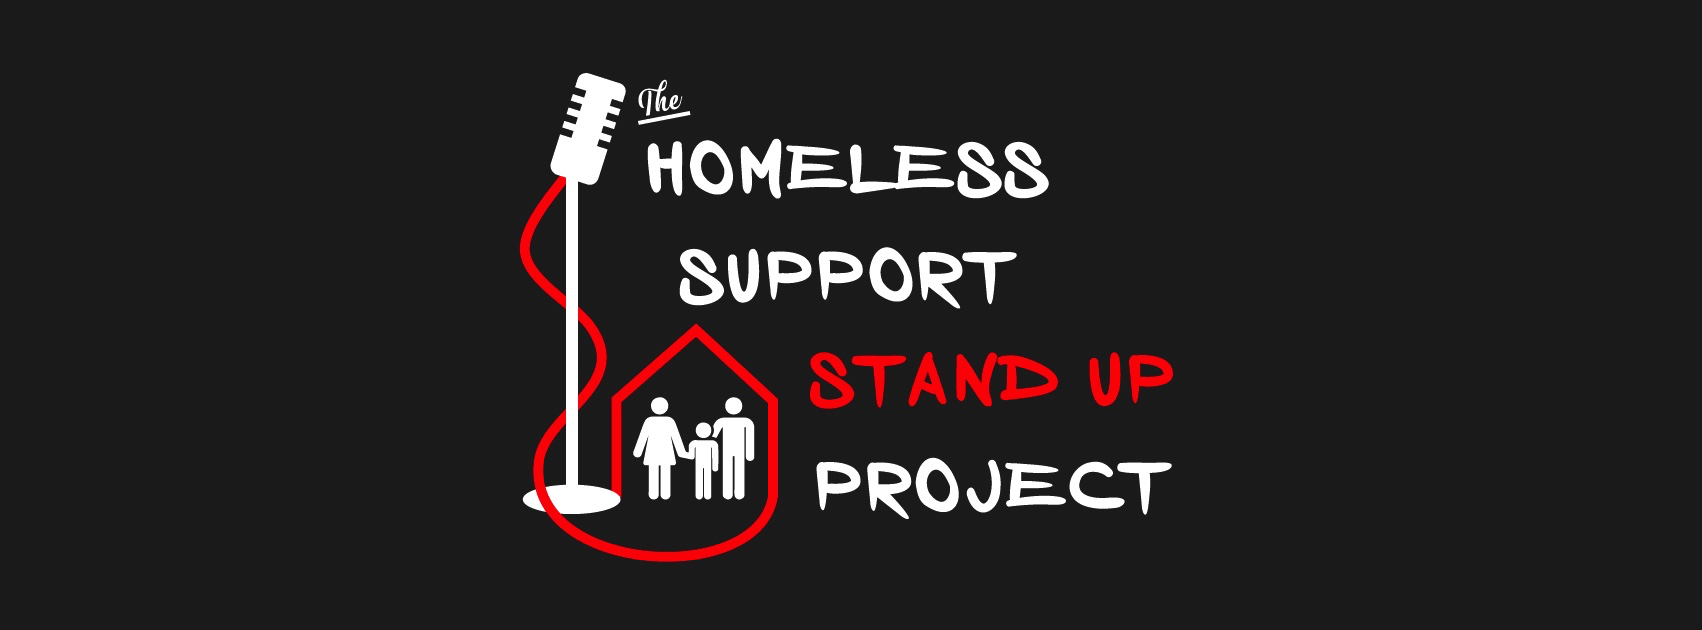 The Homeless Support Stand-Up Project